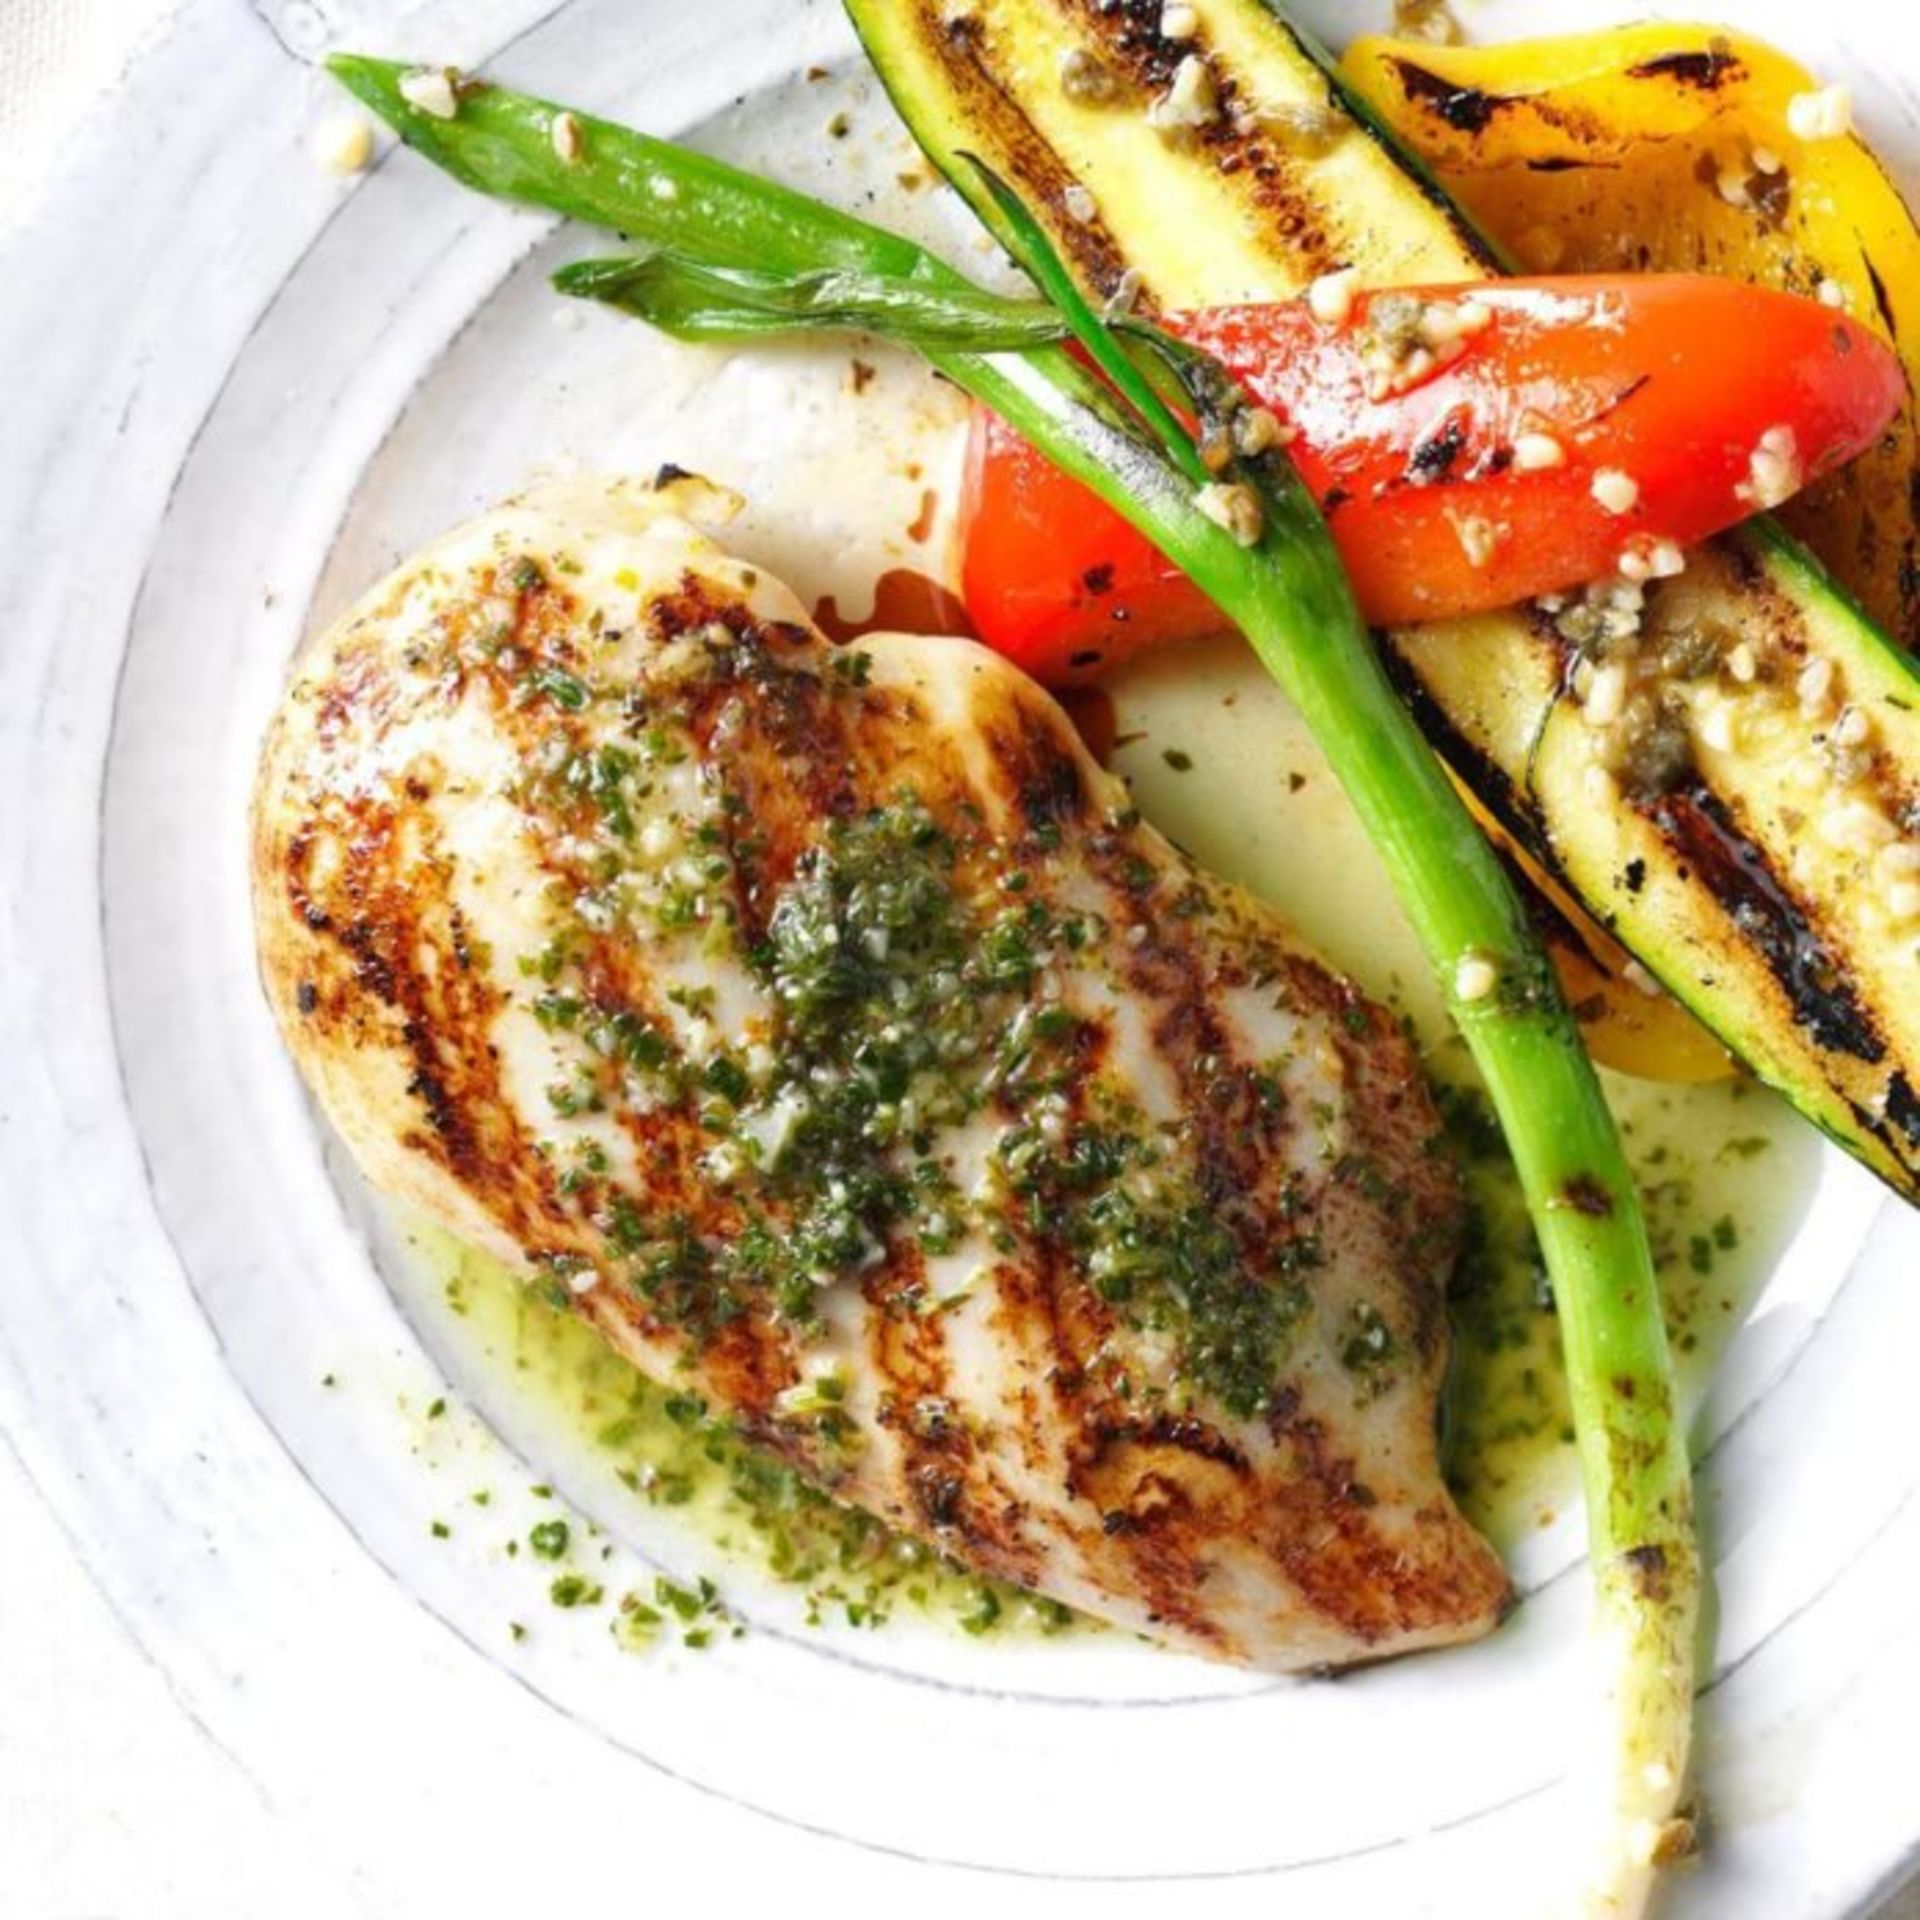 Grill Chicken with Citrus Chimichurri Sauce